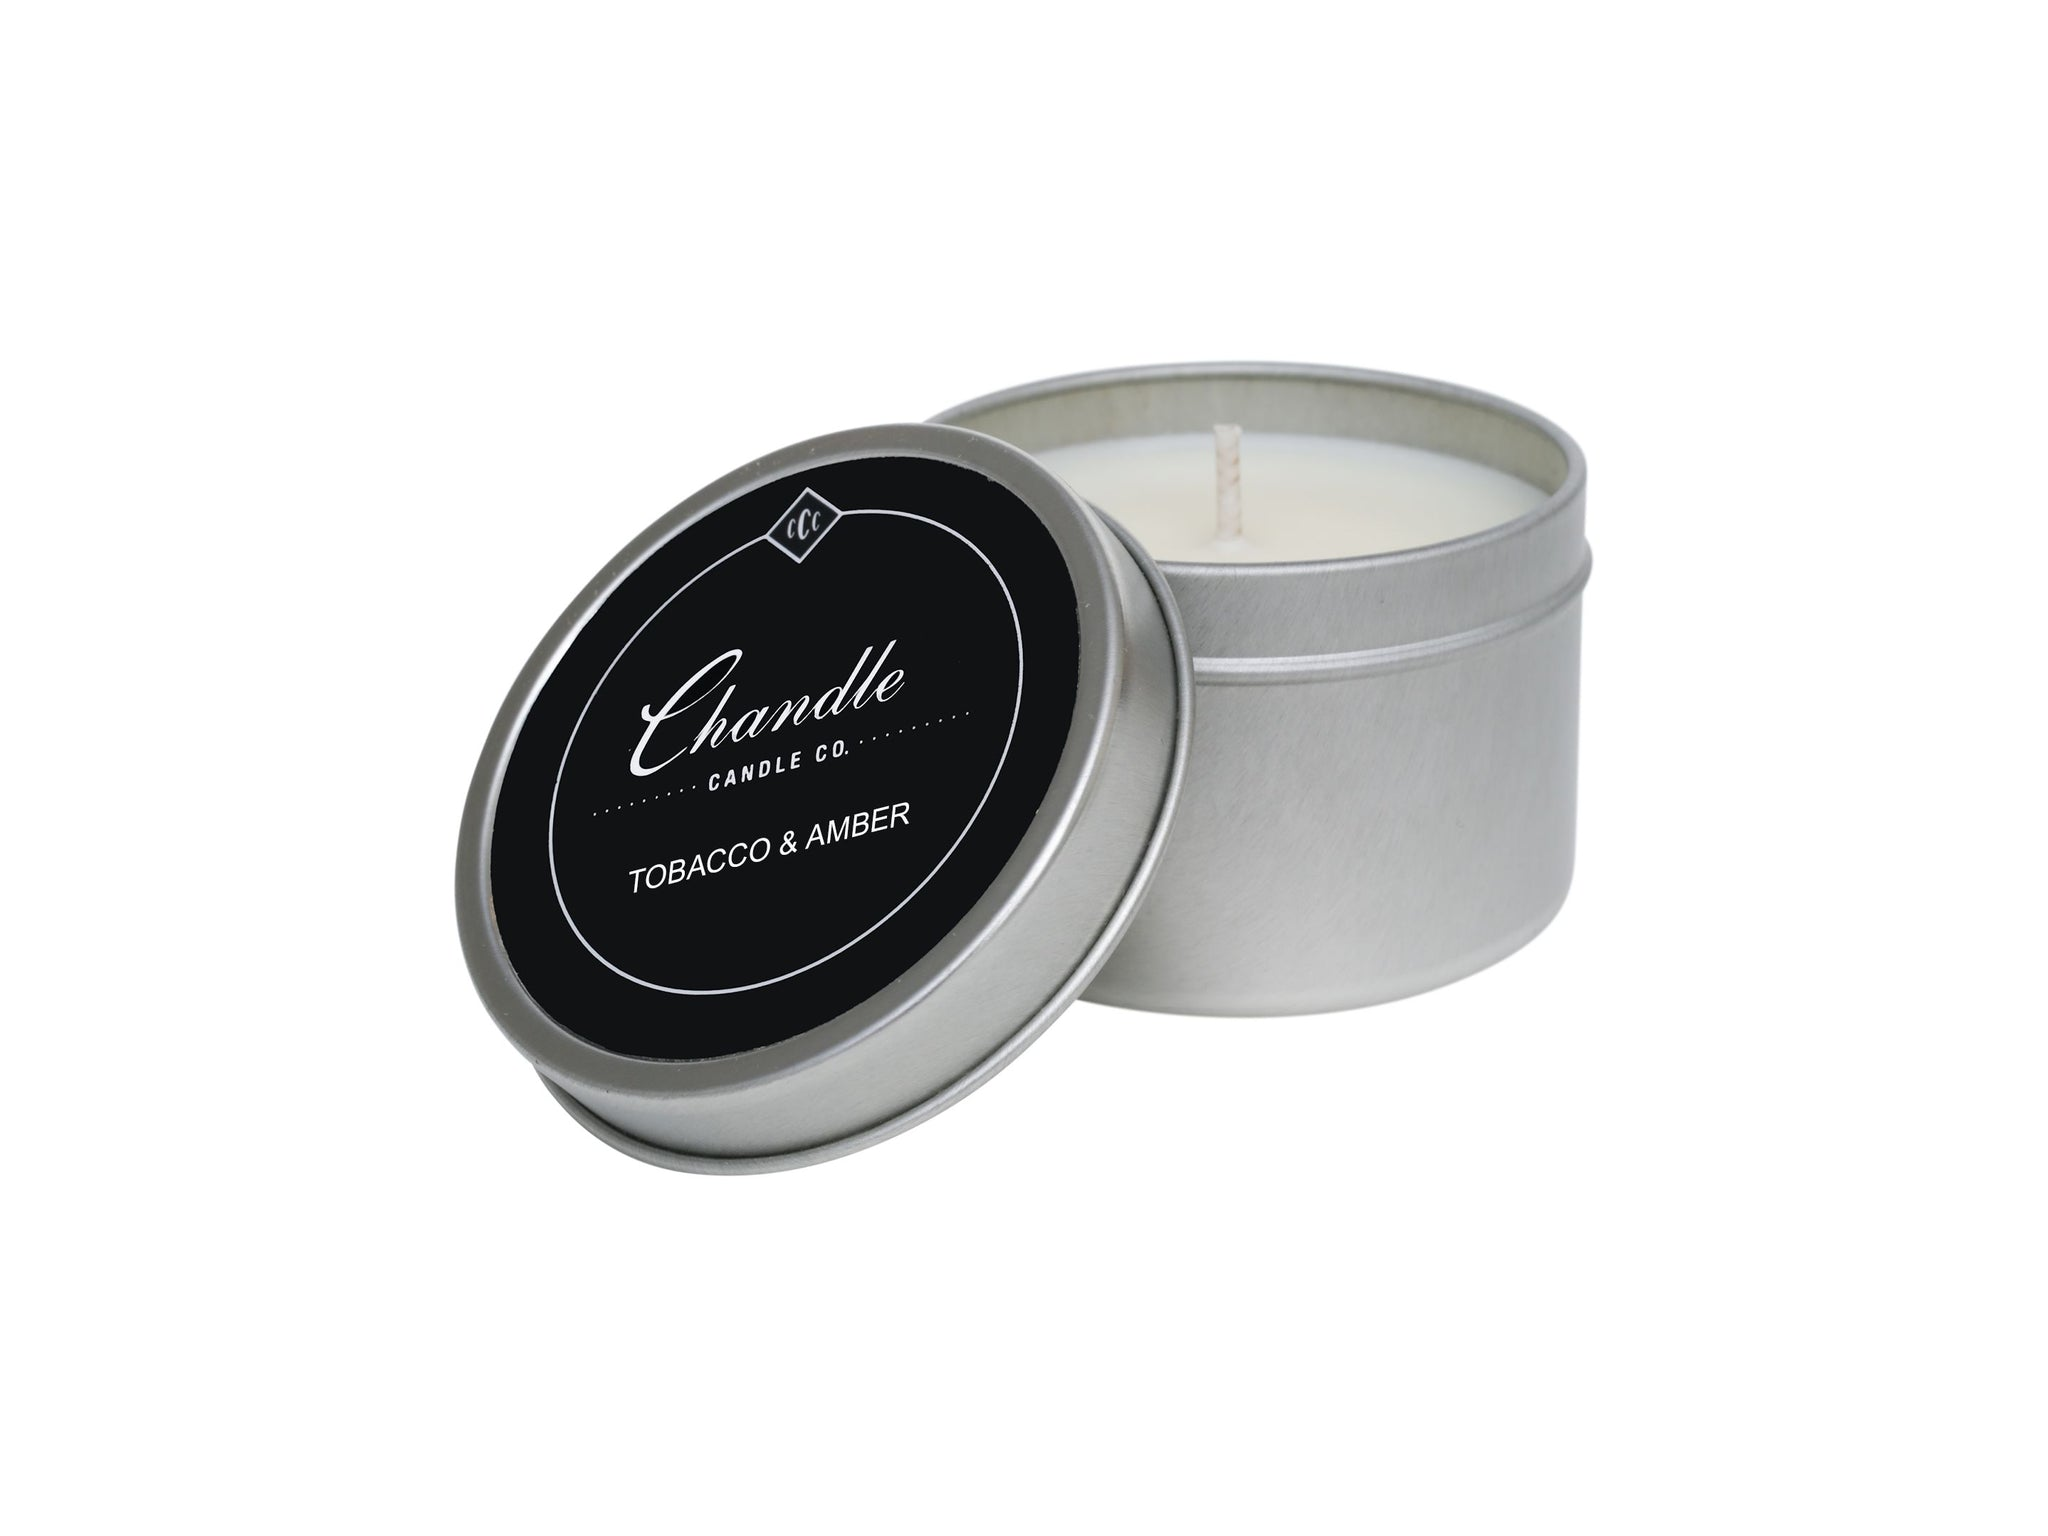 Tobacco & Amber scented travel tin candle